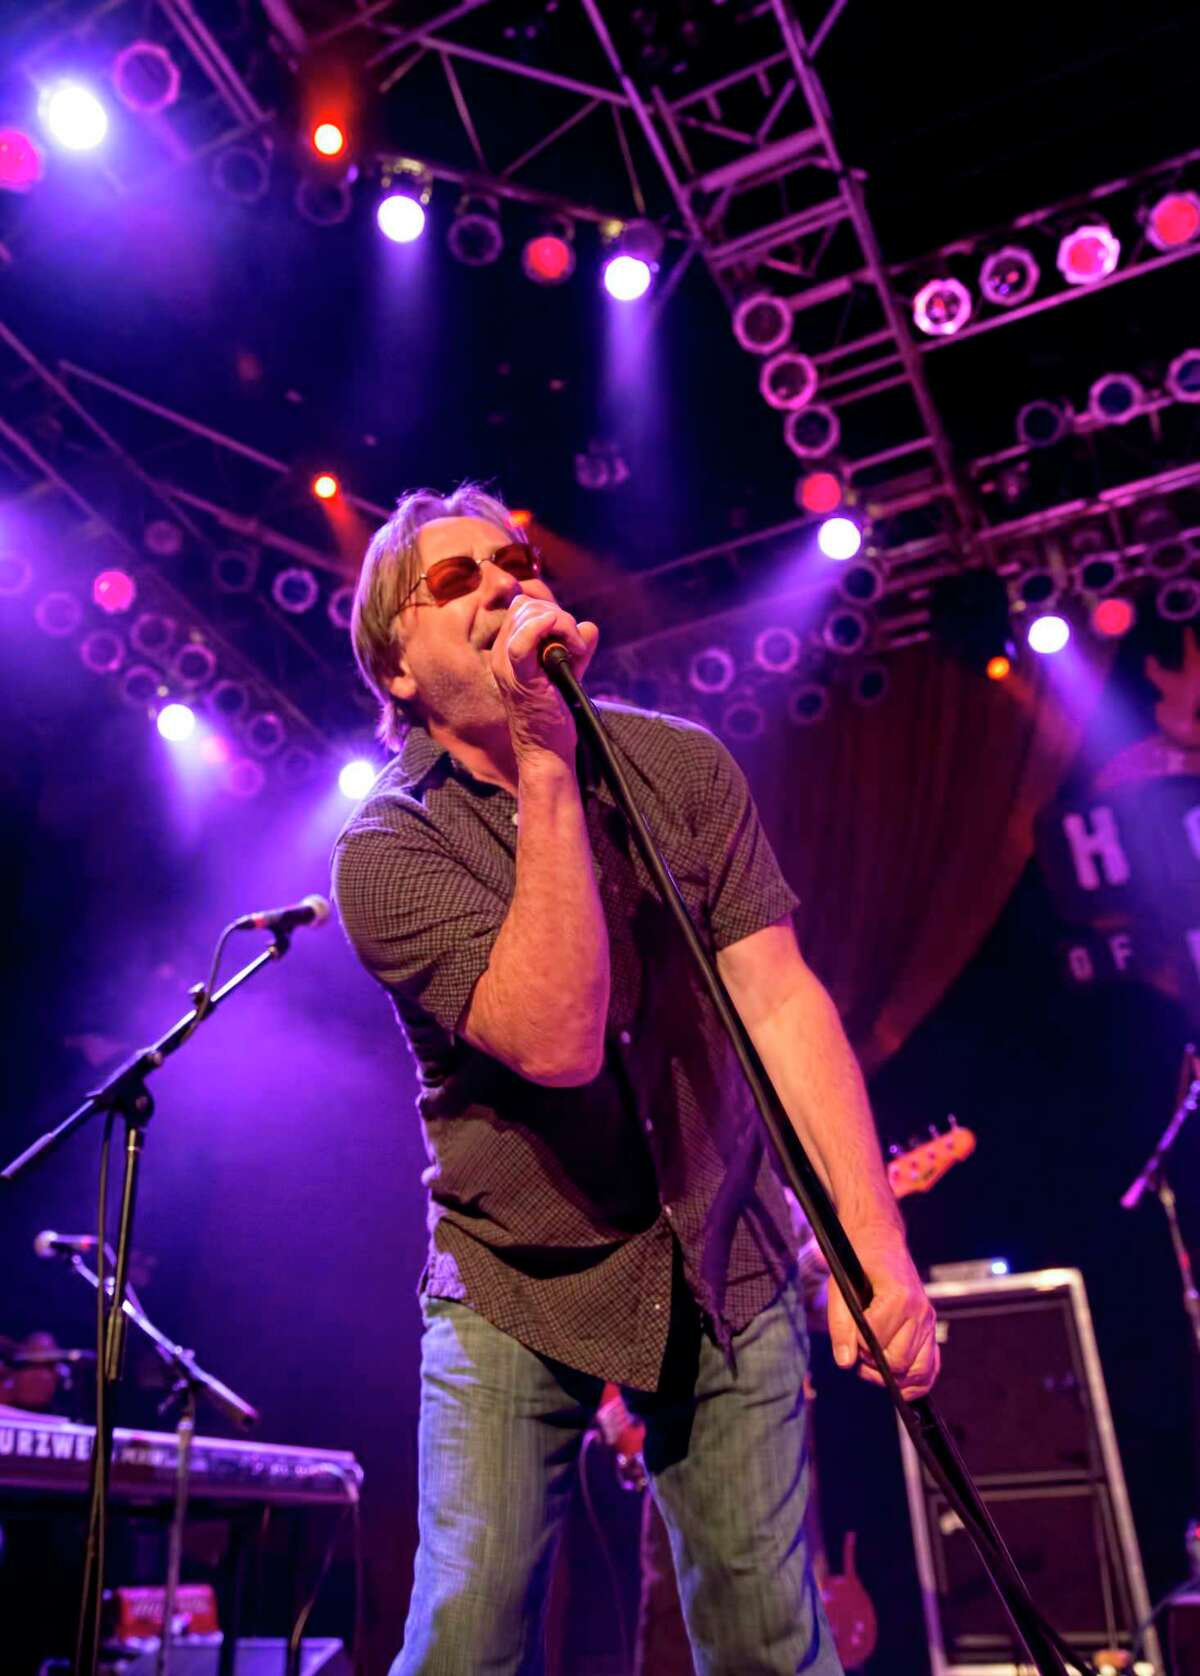 Southside Johnny and the Asbury Jukes will headline the 47th Annual Milford Oyster Festival on Saturday, Aug. 21, 2021.